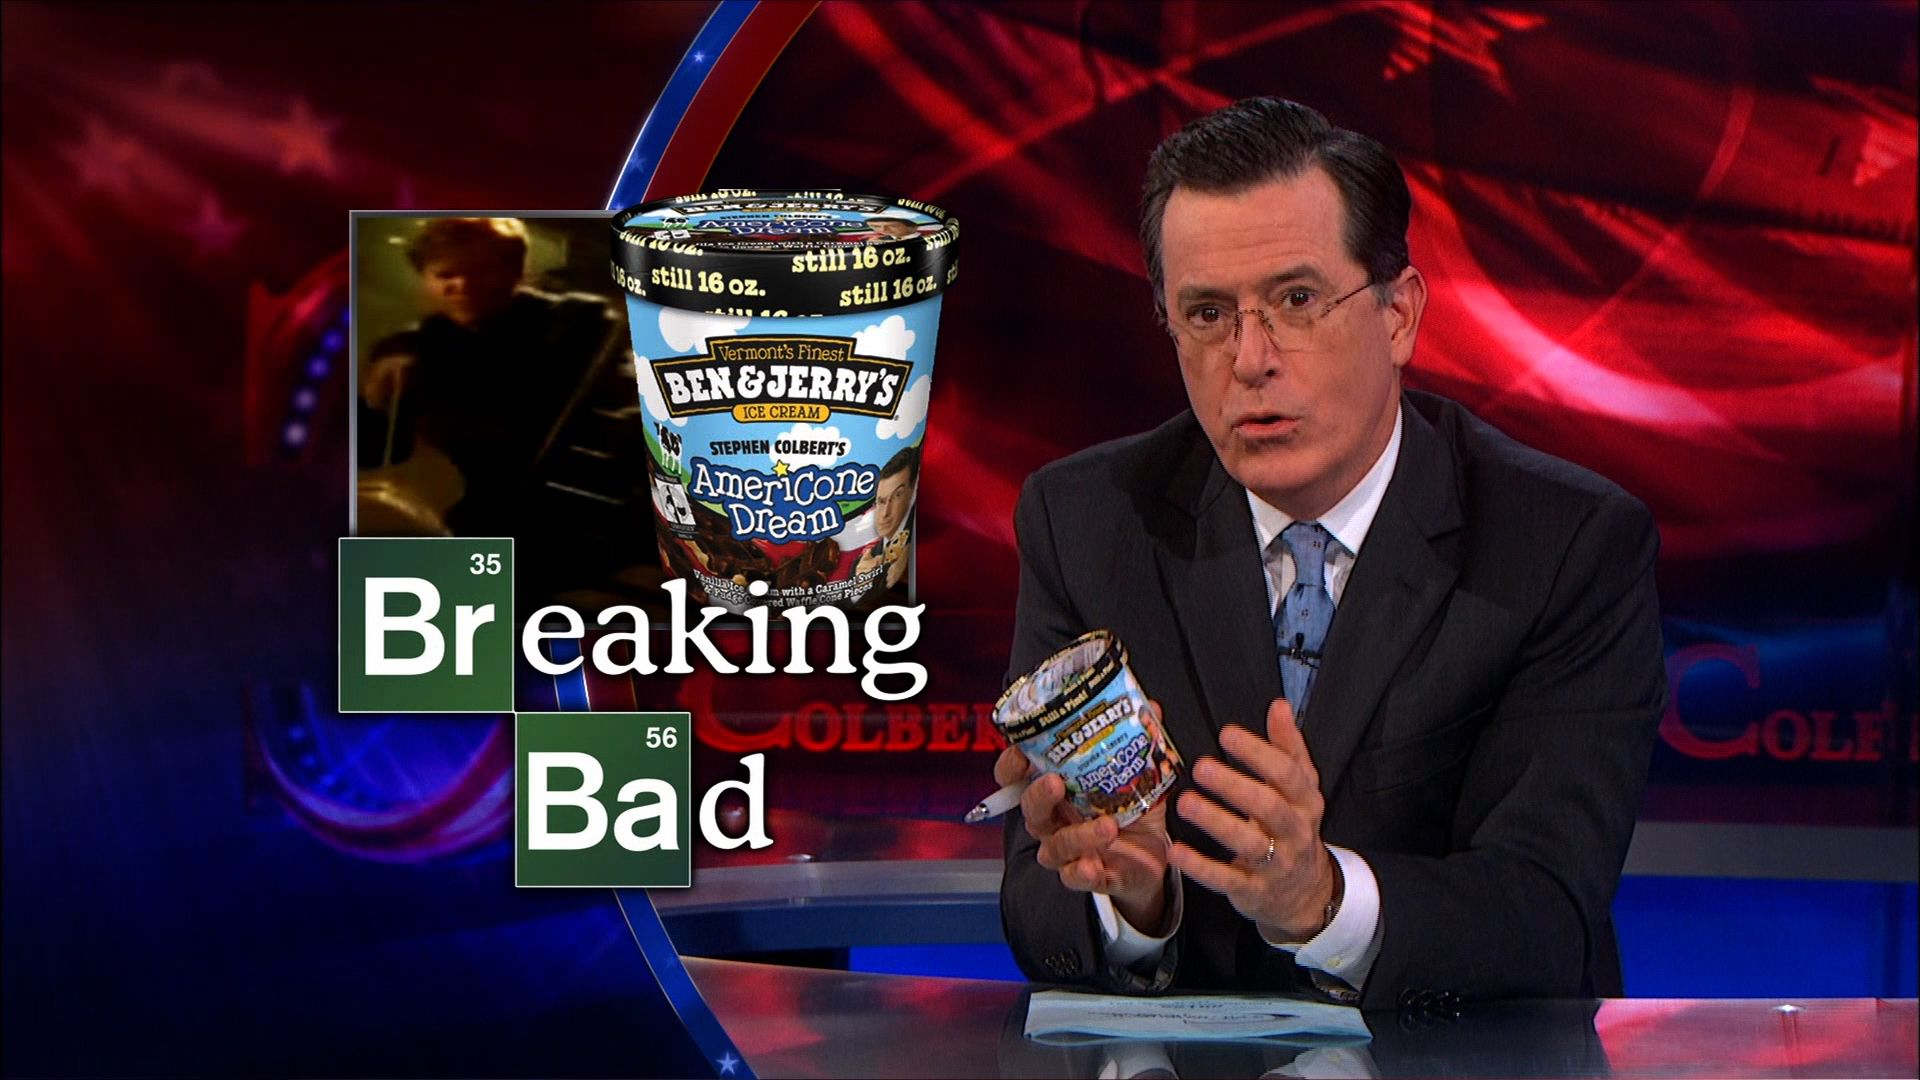 Americone Dream Product Placement The Colbert Report Video Clip Comedy Central Stephen colbert guests stretch across celebrities, sports, political, and social arenas. americone dream product placement the